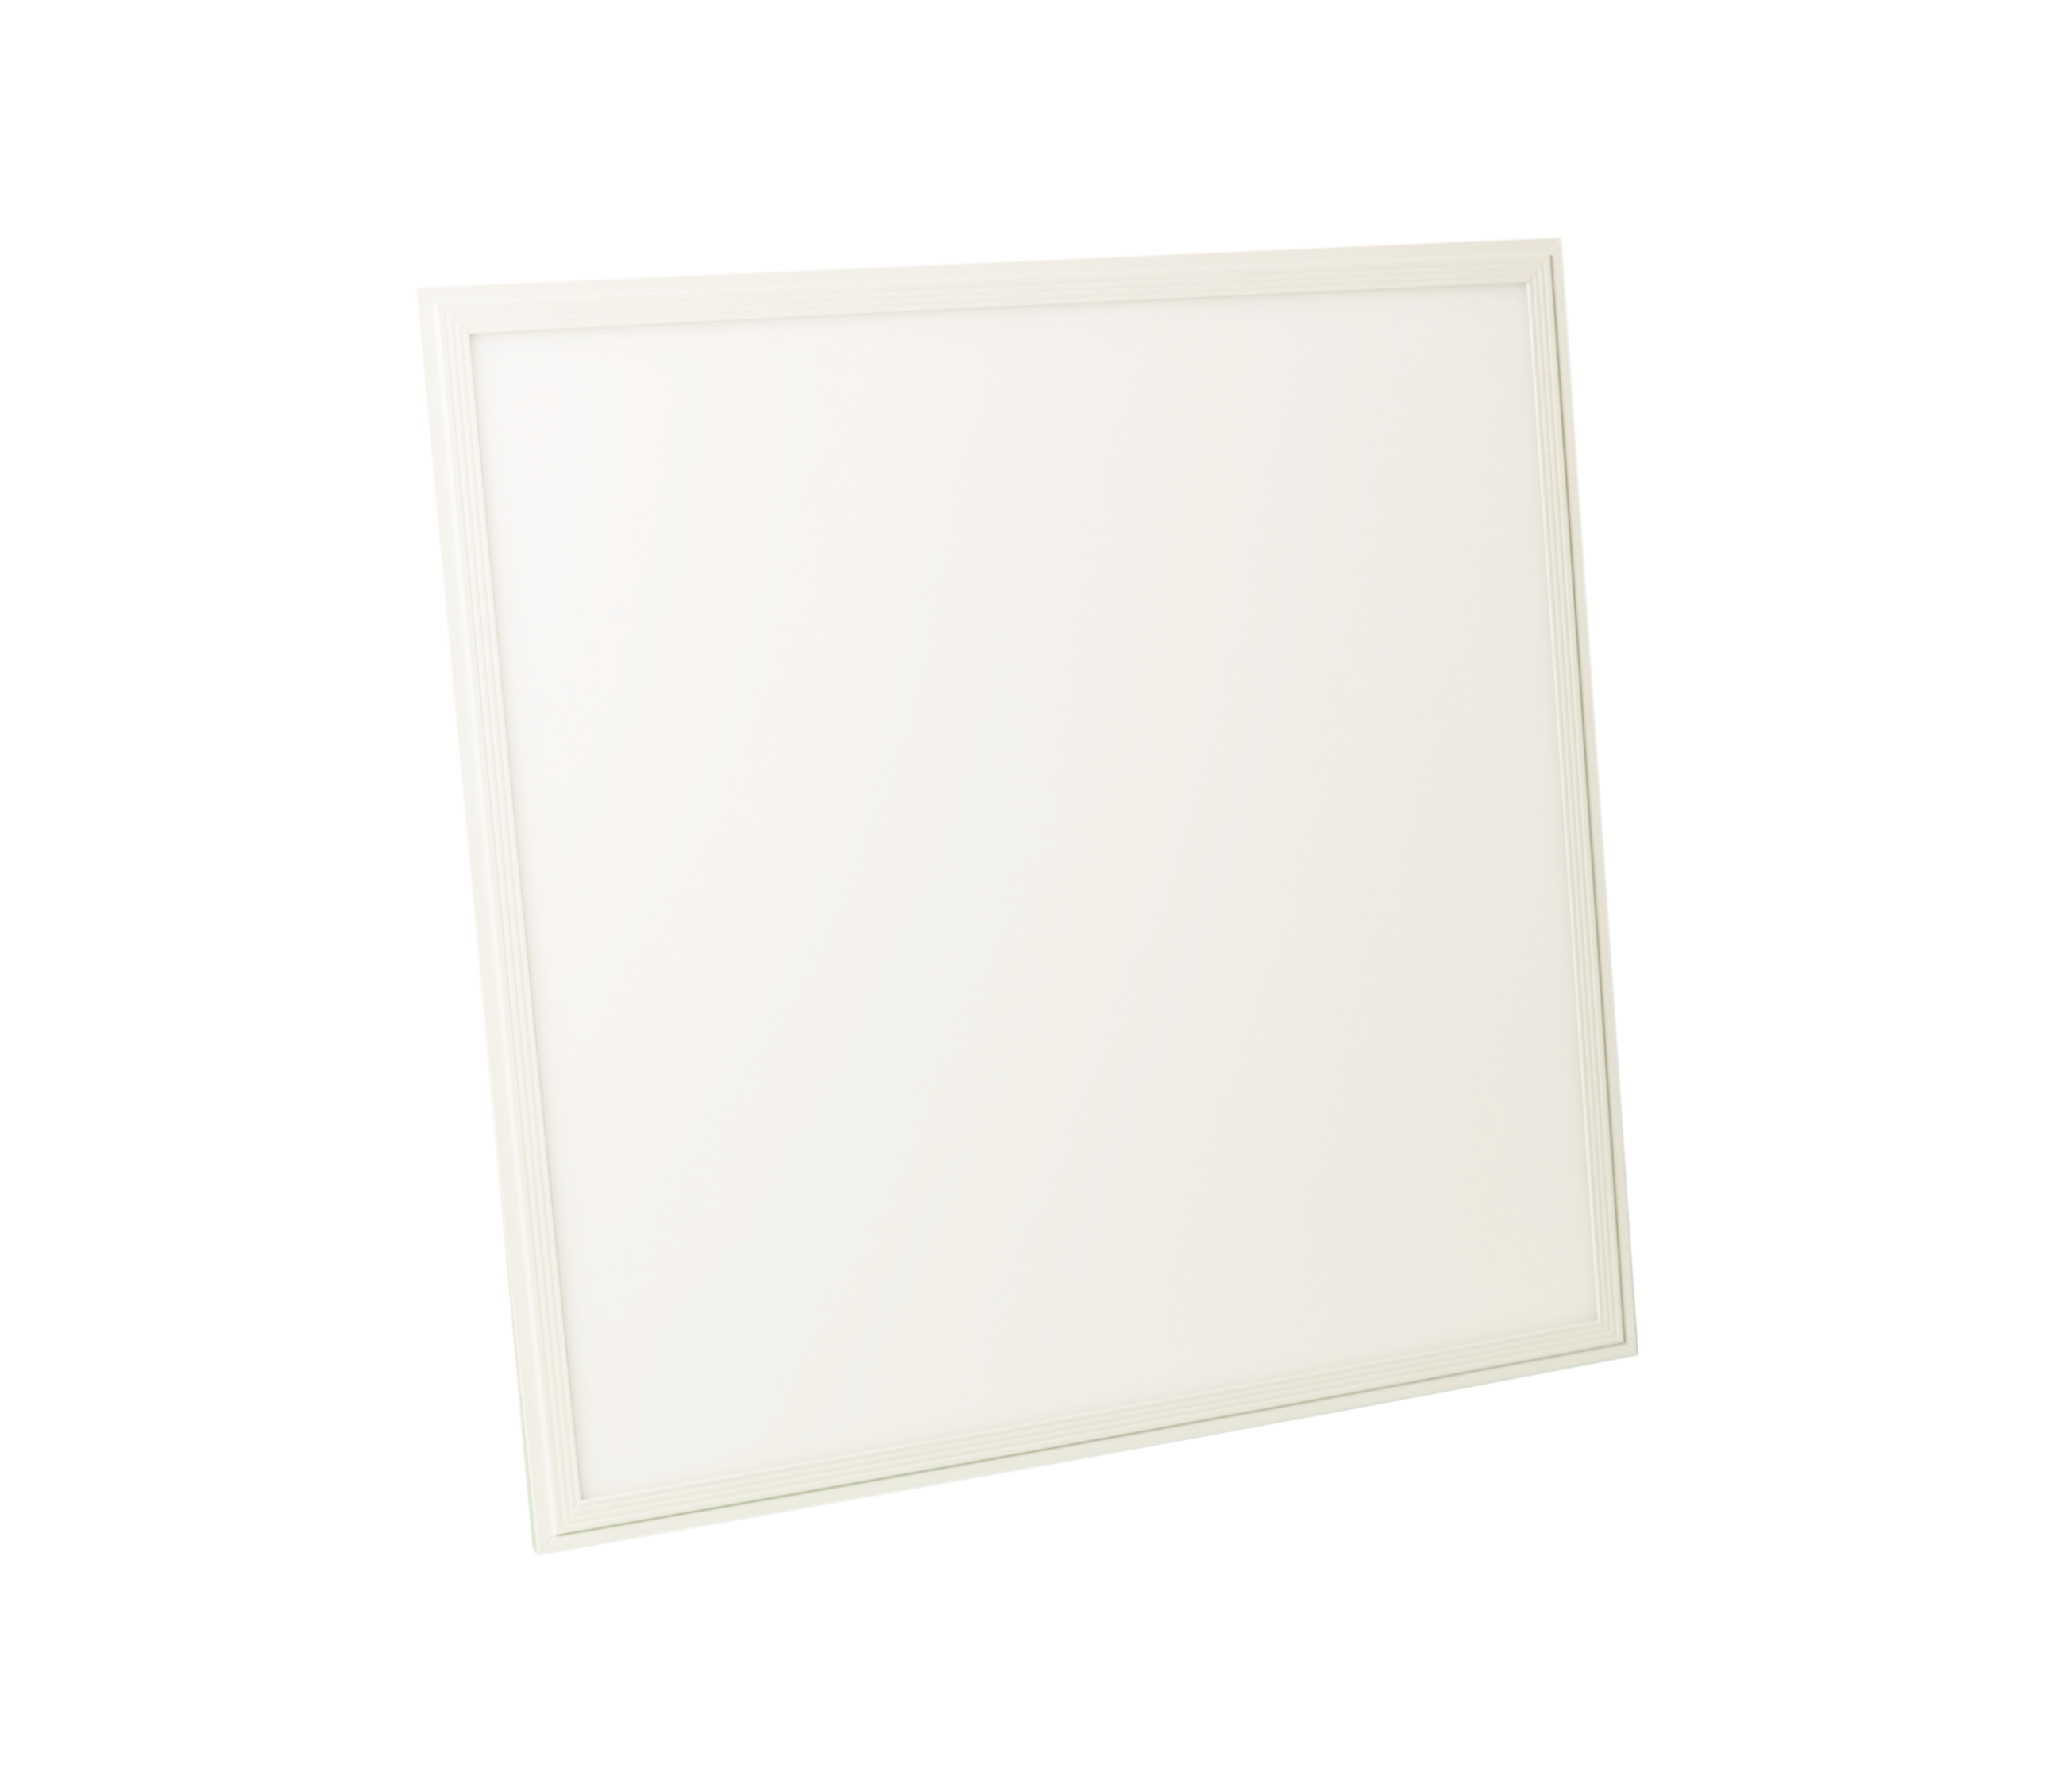 LED LIGHT PANEL  36W - 600mm X 600mm - 6000K - 120L/W